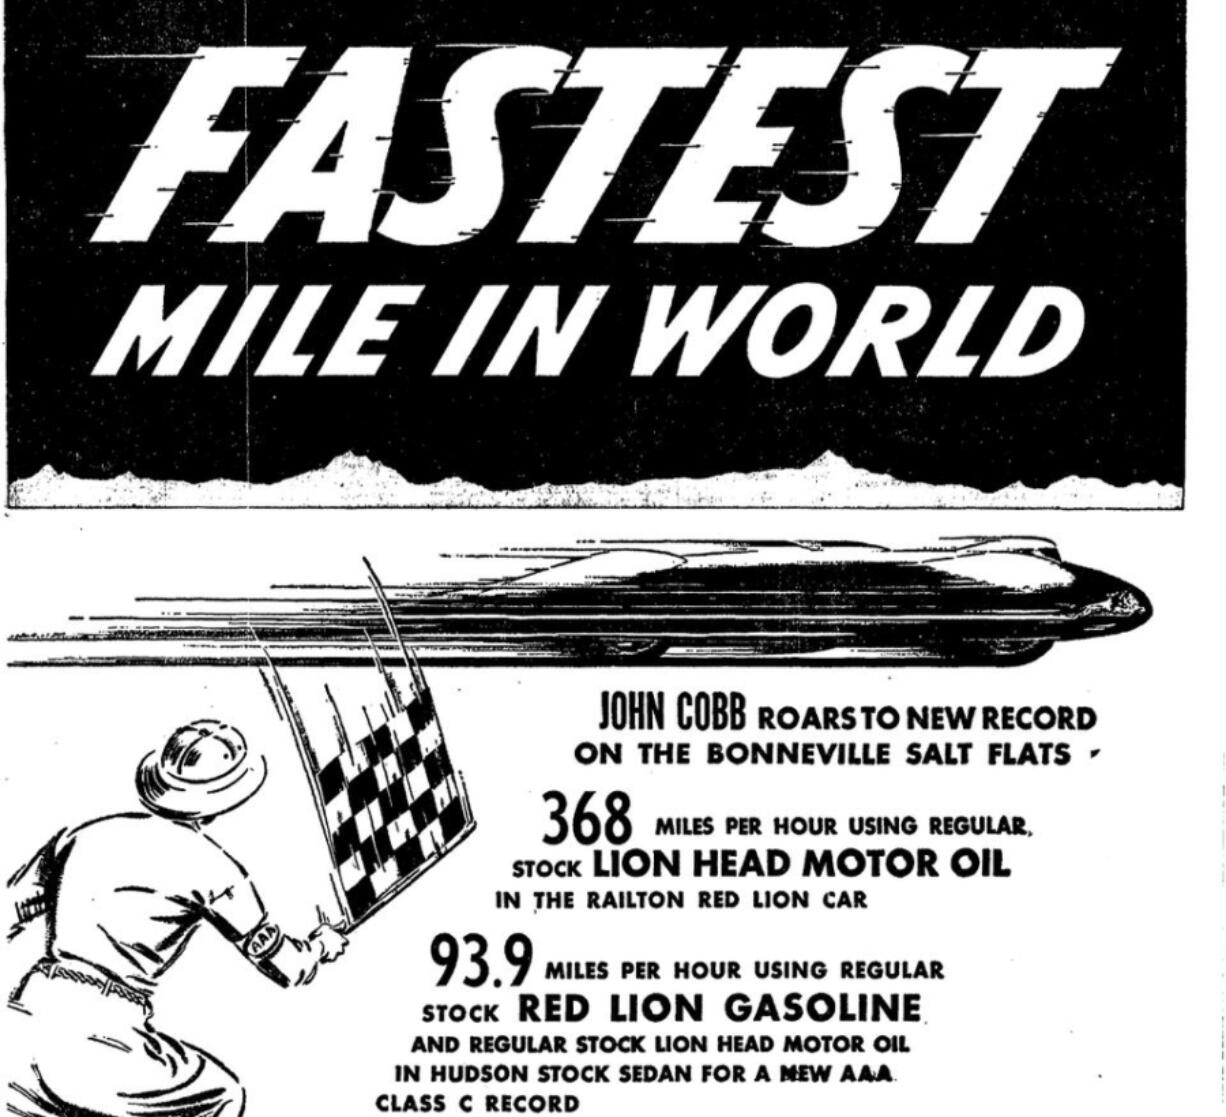 An ad in The Oregon Journal used John Cobb's world record to sell motor oil.